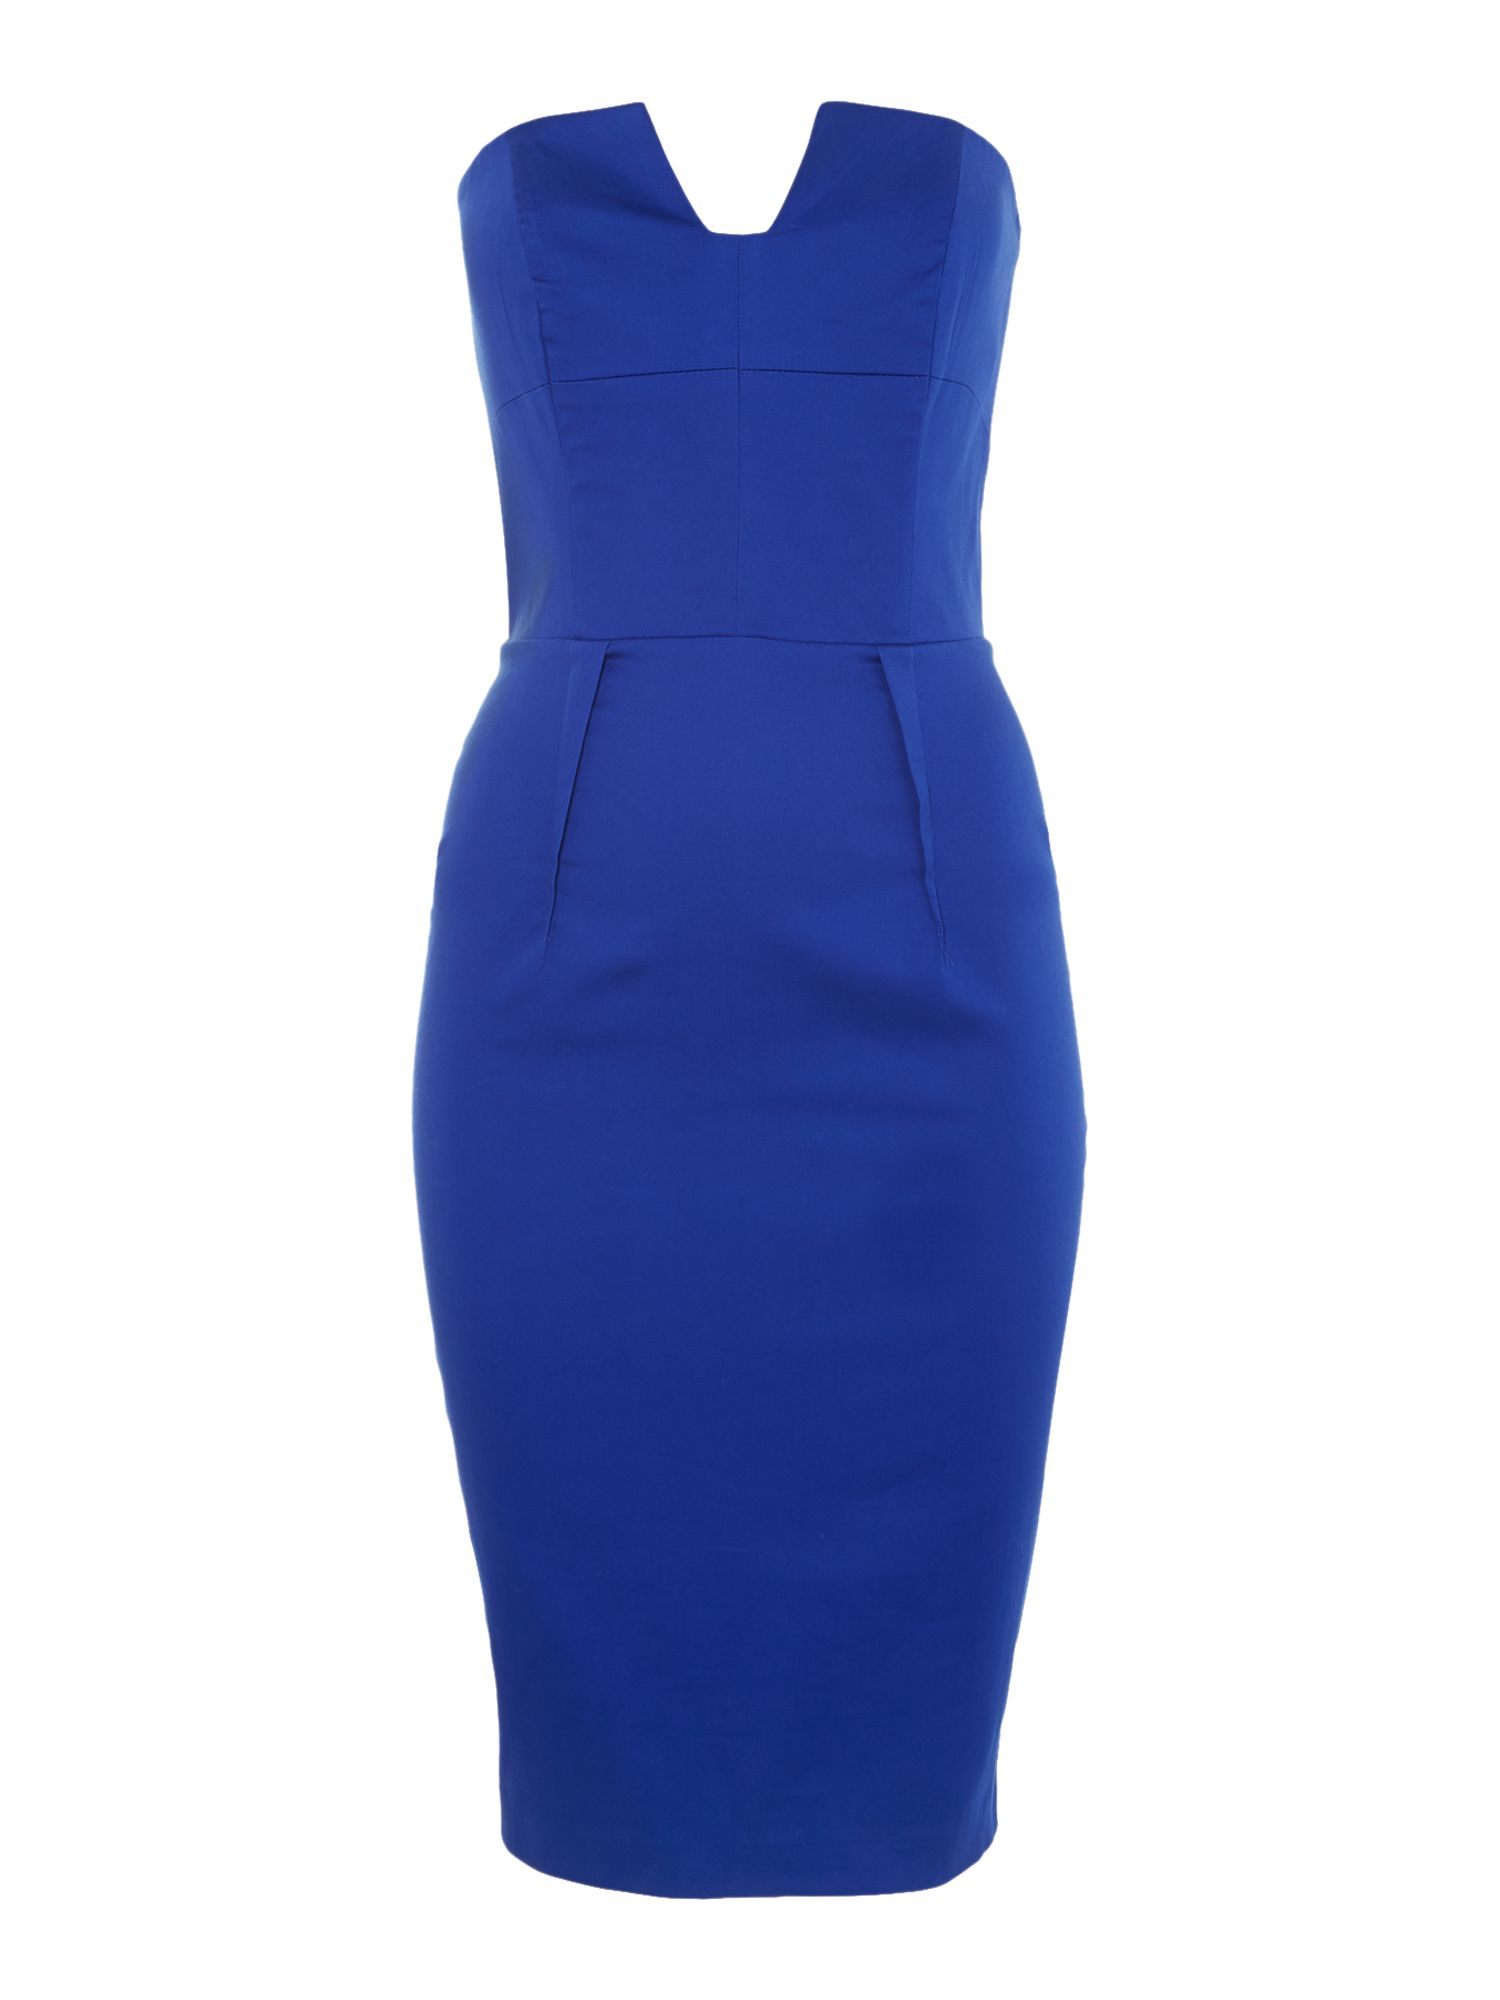 Kardashian Kollection strapless bodycon dress